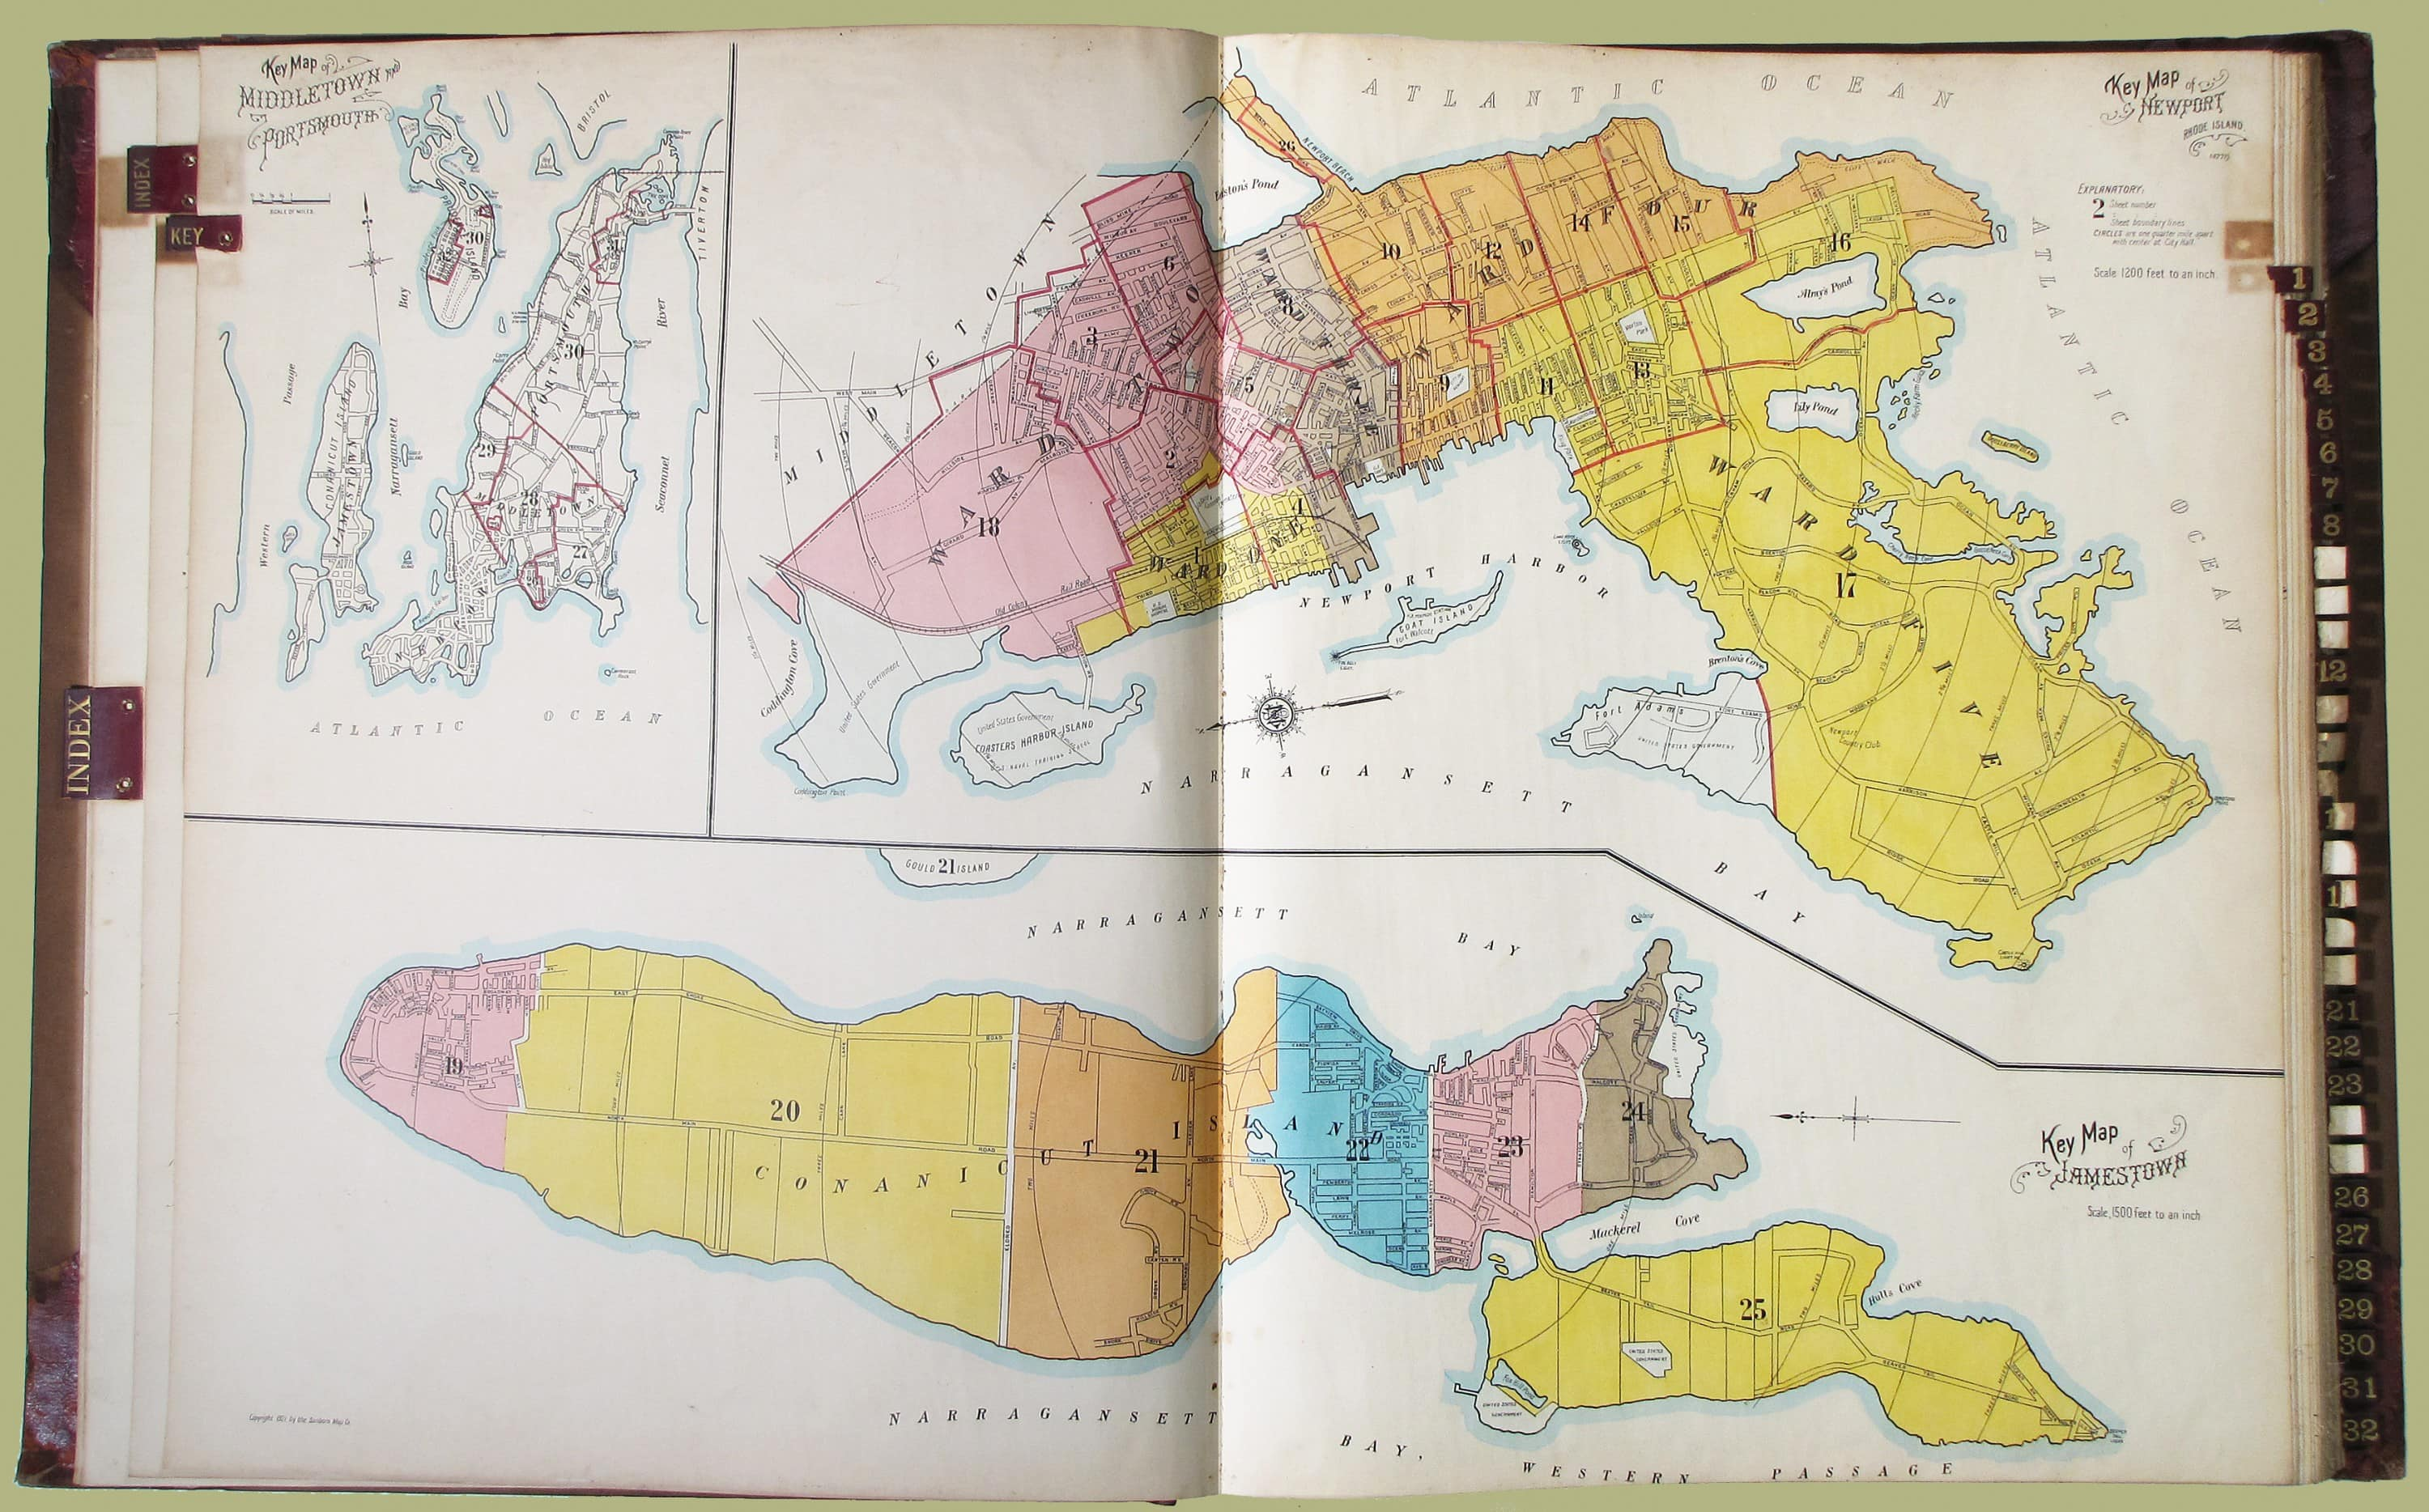 Property atlas of Newport, Rhode Island - Rare & Antique Maps on map of africa, map of the us, map of greece, map of senegal, map of the mediterranean, map of tangier, map of atlantic ocean, map of gibraltar, map of fez, map of world, map of romania, map of marrakech, map of nicaragua, map of austria, map of mali, map of algeria, map of honduras, map of saint martin, map of western sahara, map of mongolia,